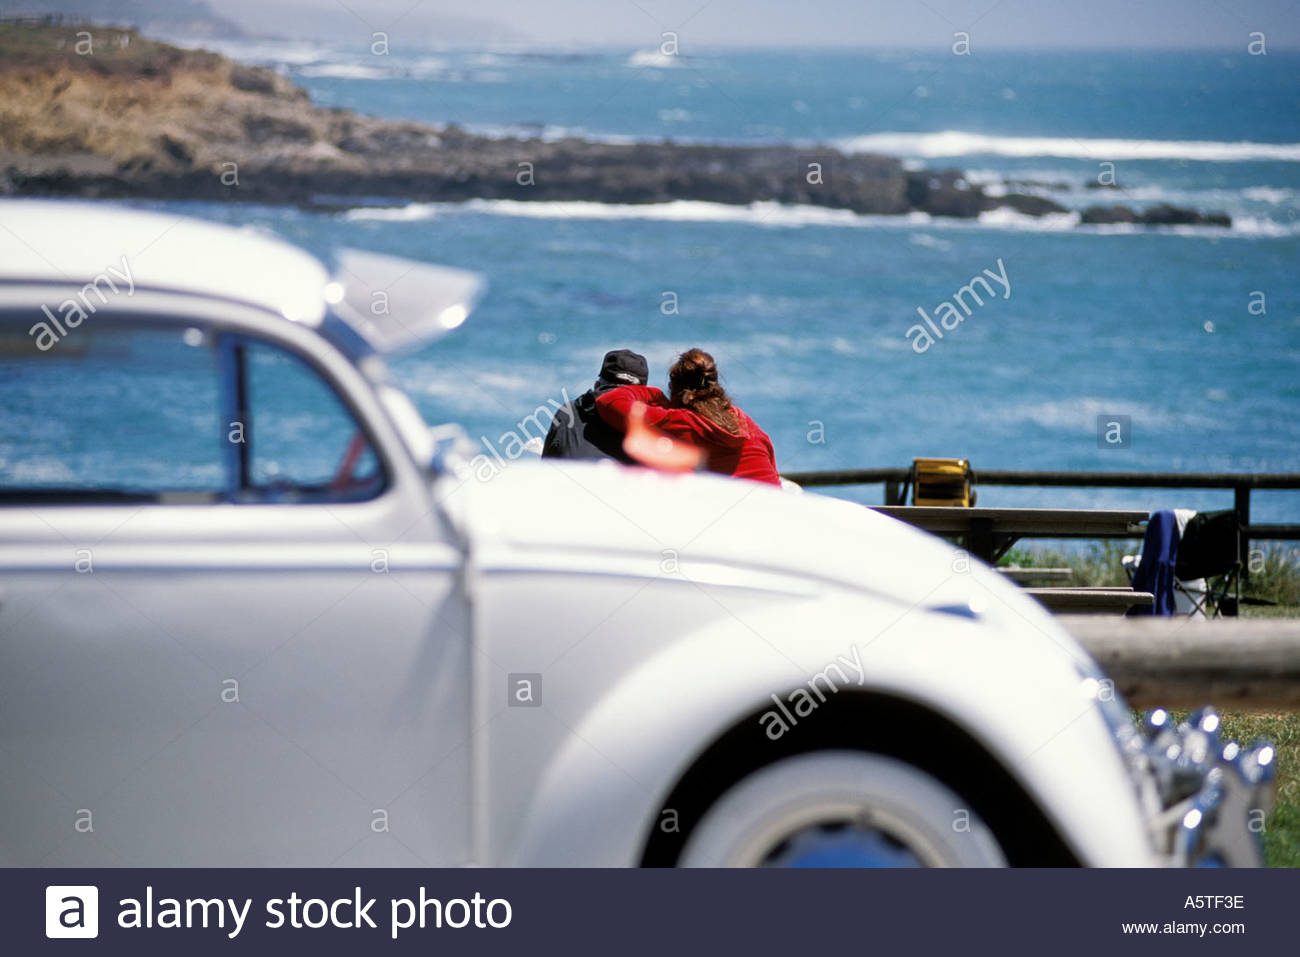 A classic VW Beetle and a couple watching the ocean view. - Stock Image